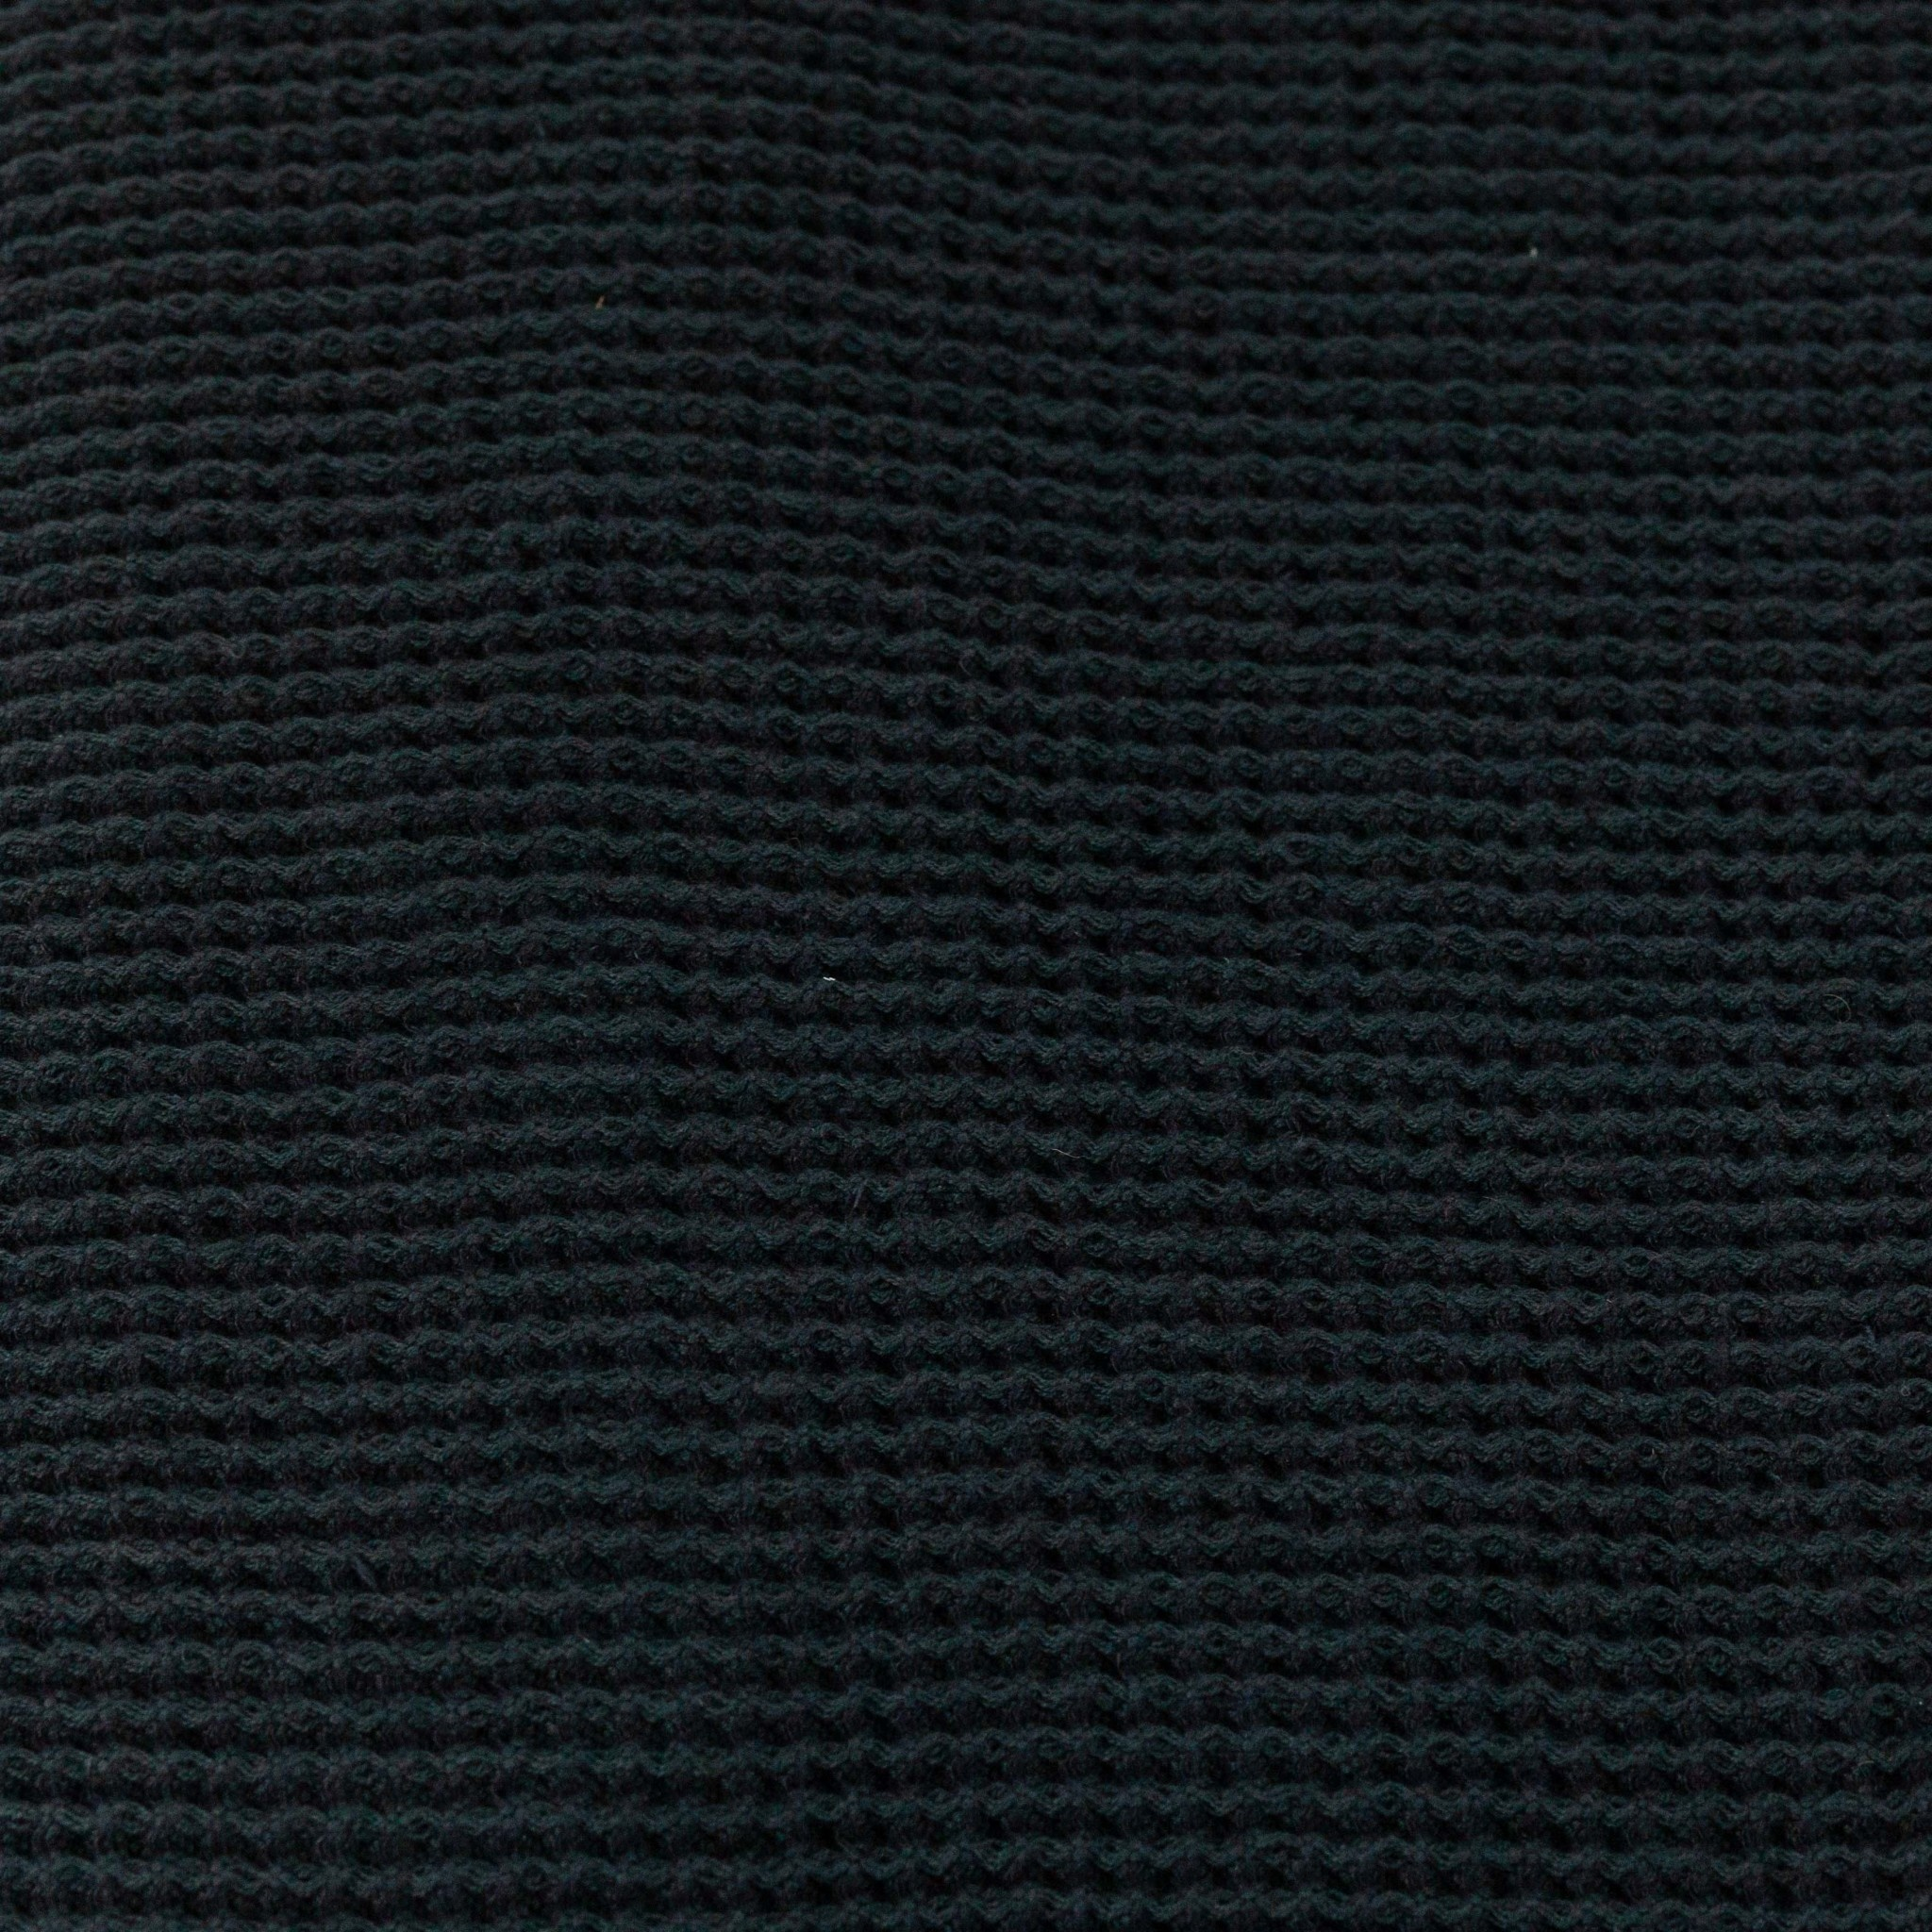 """Washed French Linen + Cotton Thermal Waffle Hand Towel - Black - 32"""" x 20"""""""